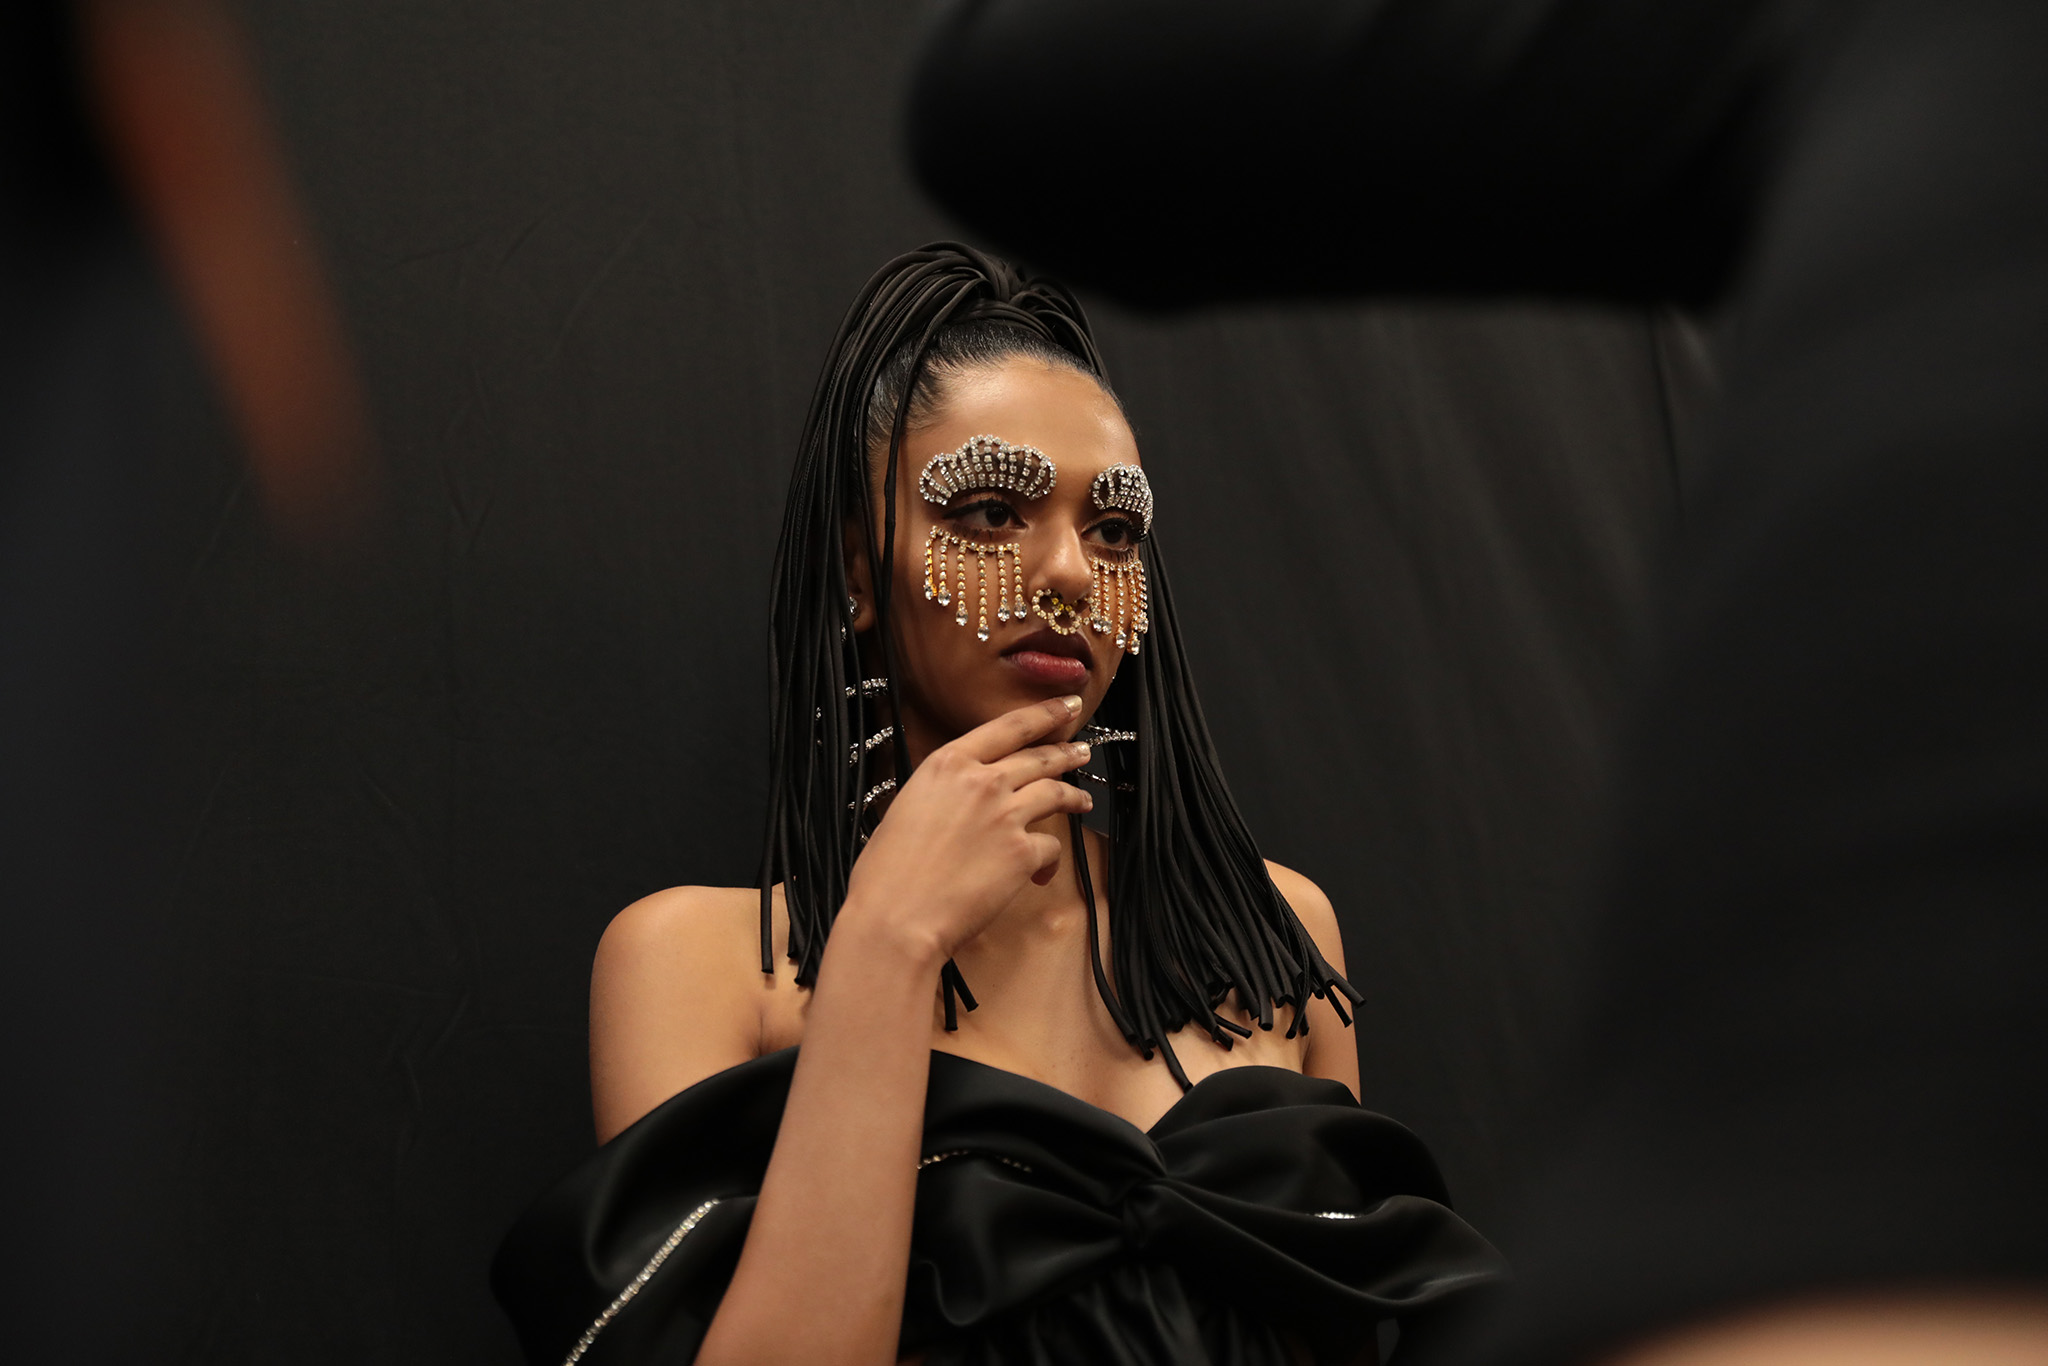 Backstage at Area RTW Spring 2020